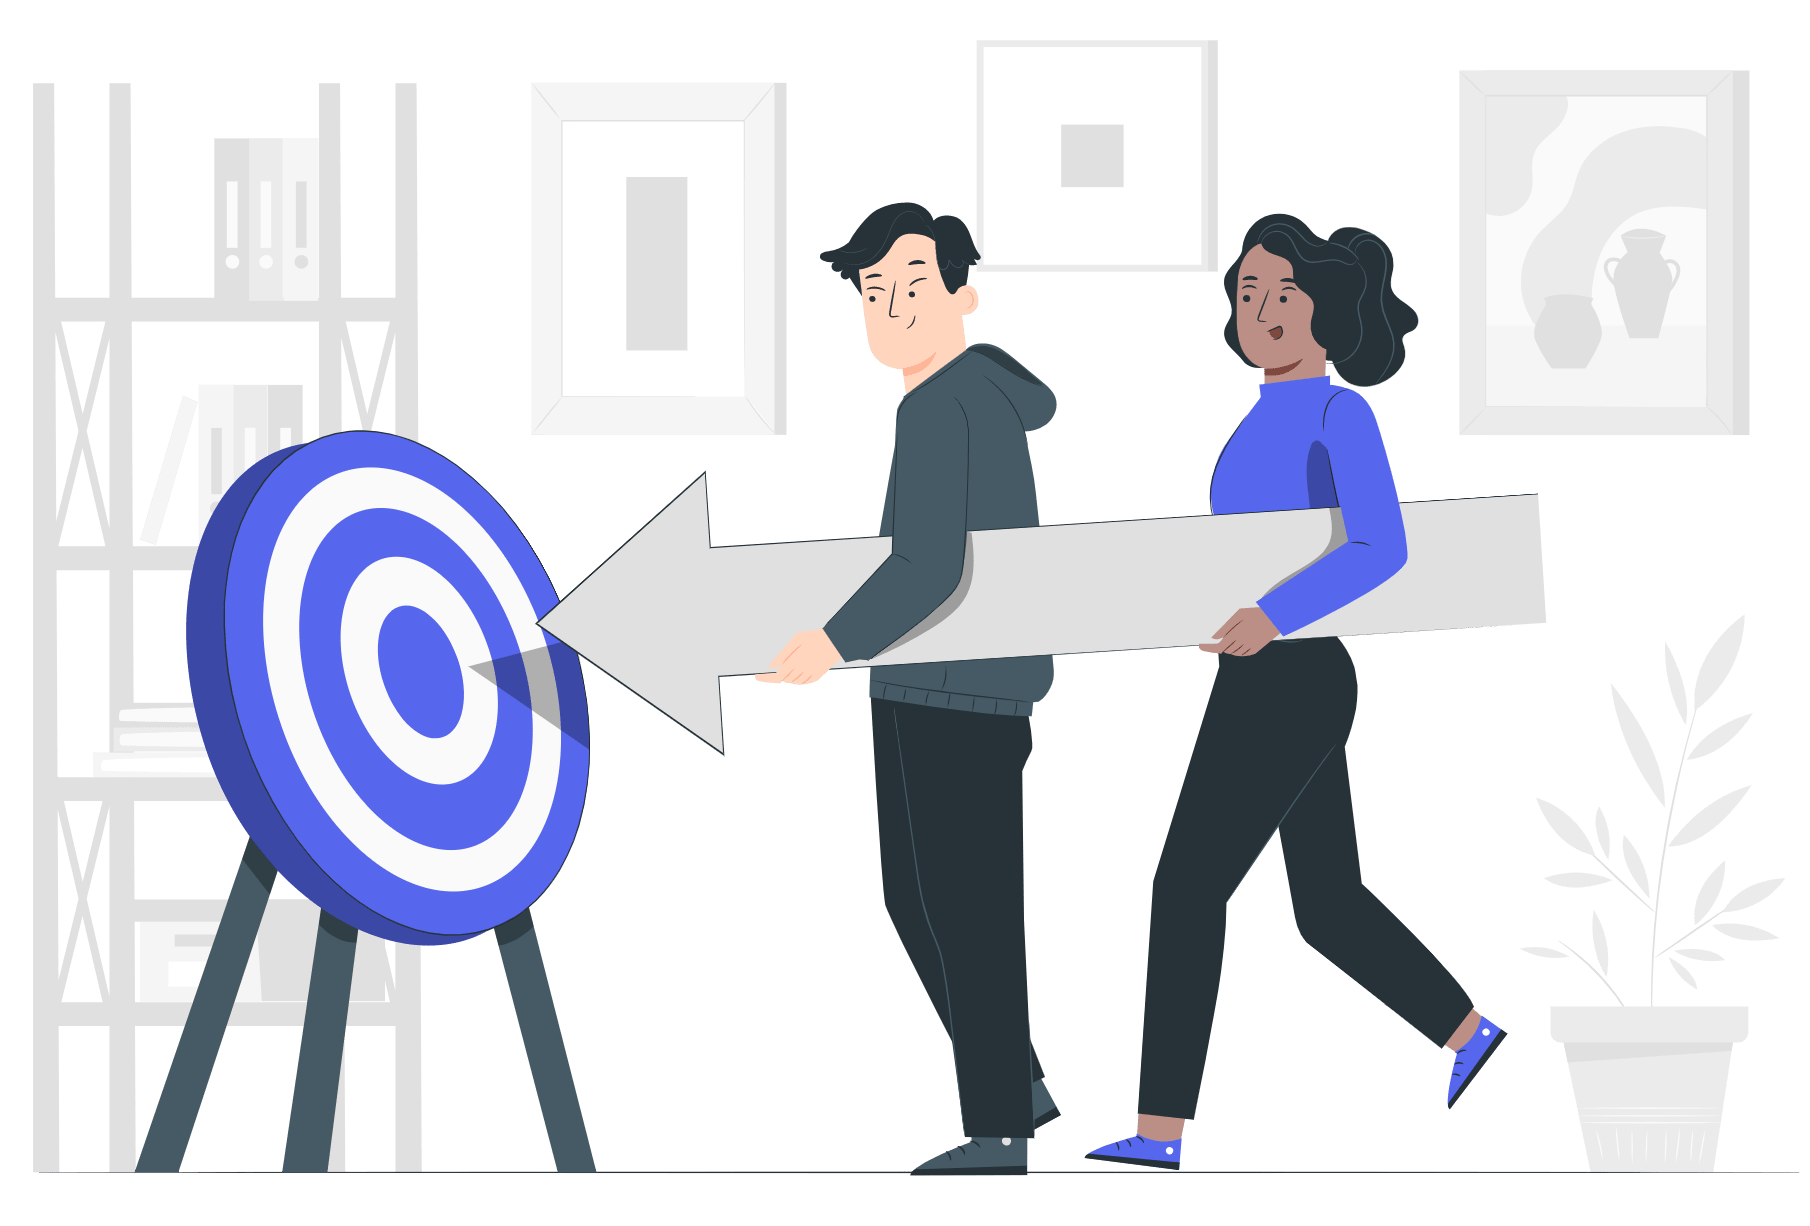 how to measure the effectiveness of product launch to evaluate efficiency & success metrics